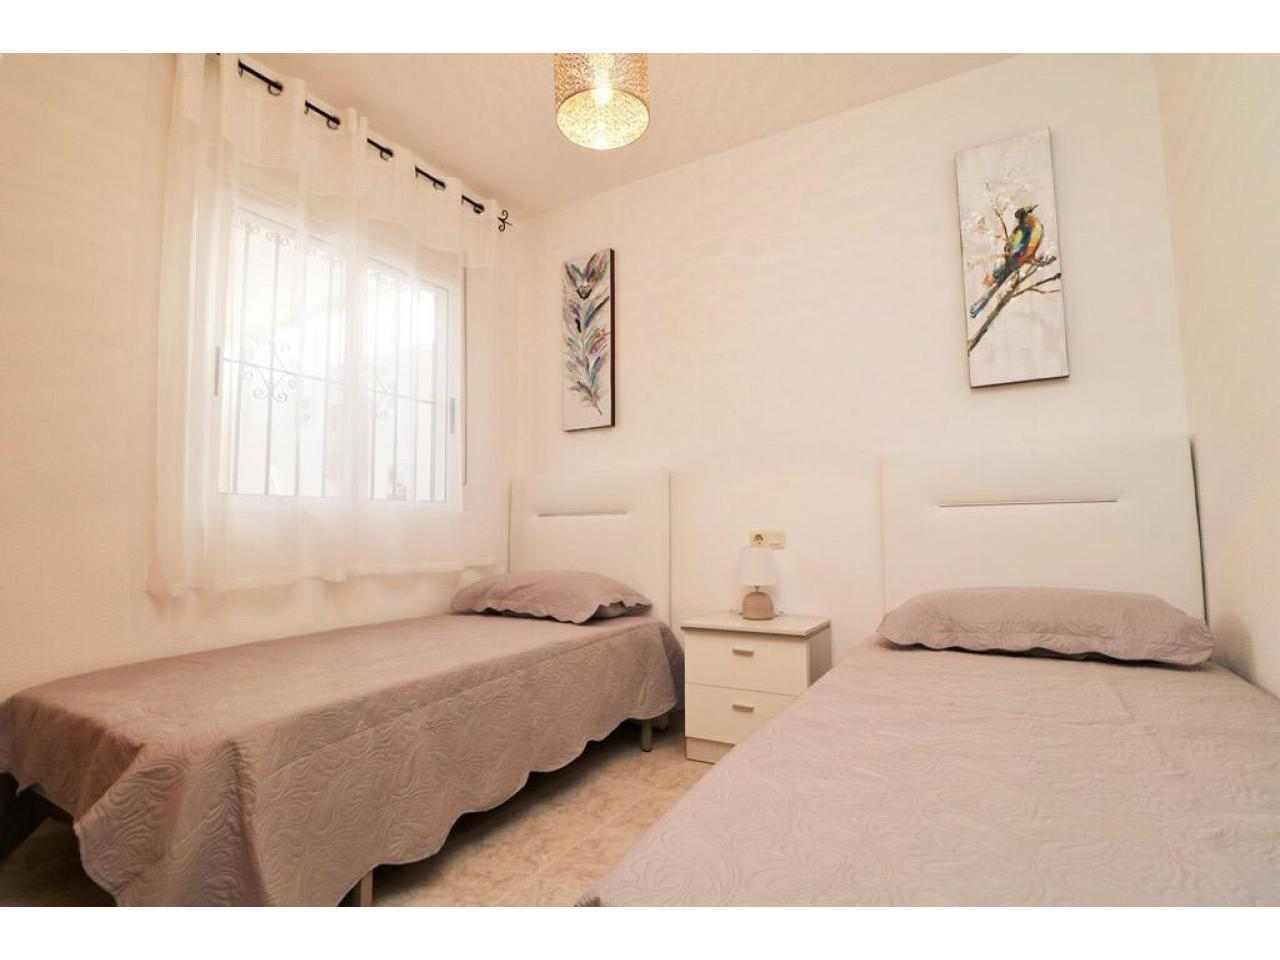 Apartment in Torrevieja, Spain for rent - 8